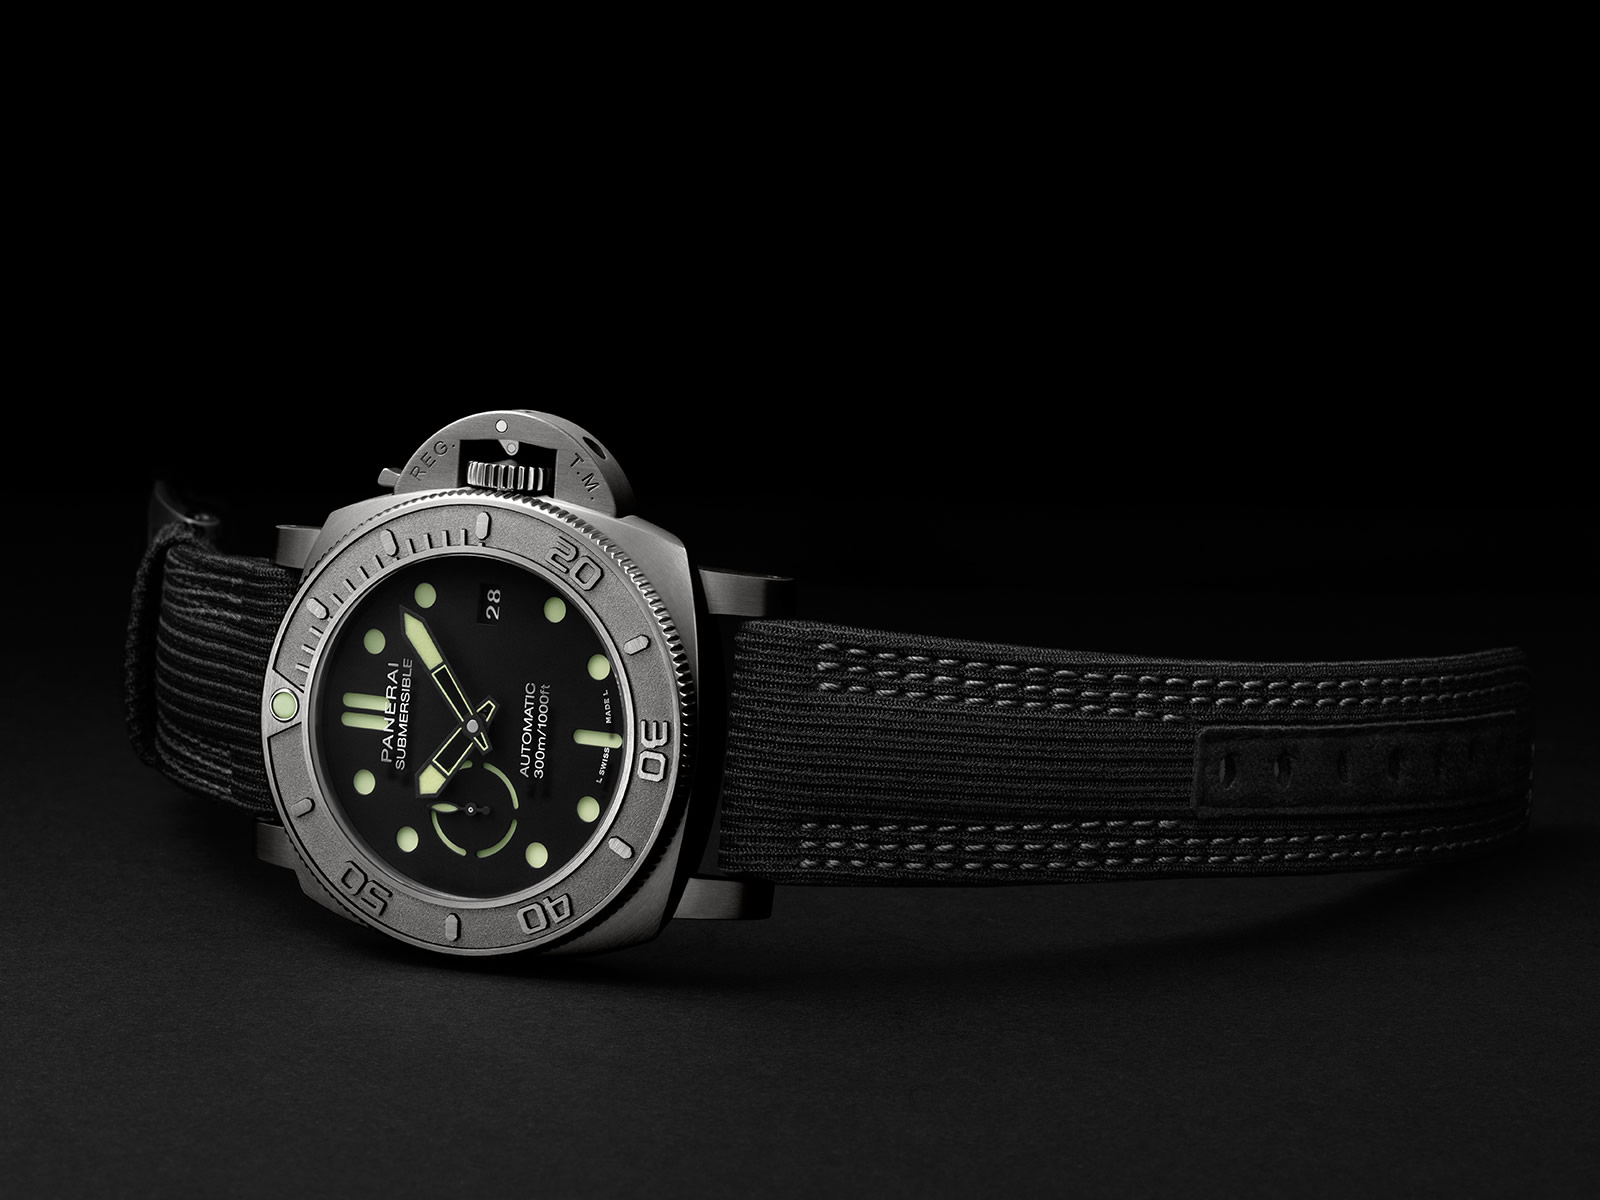 pam00984-officine-panerai-submersible-mike-horn-edition-47mm-1-.jpg